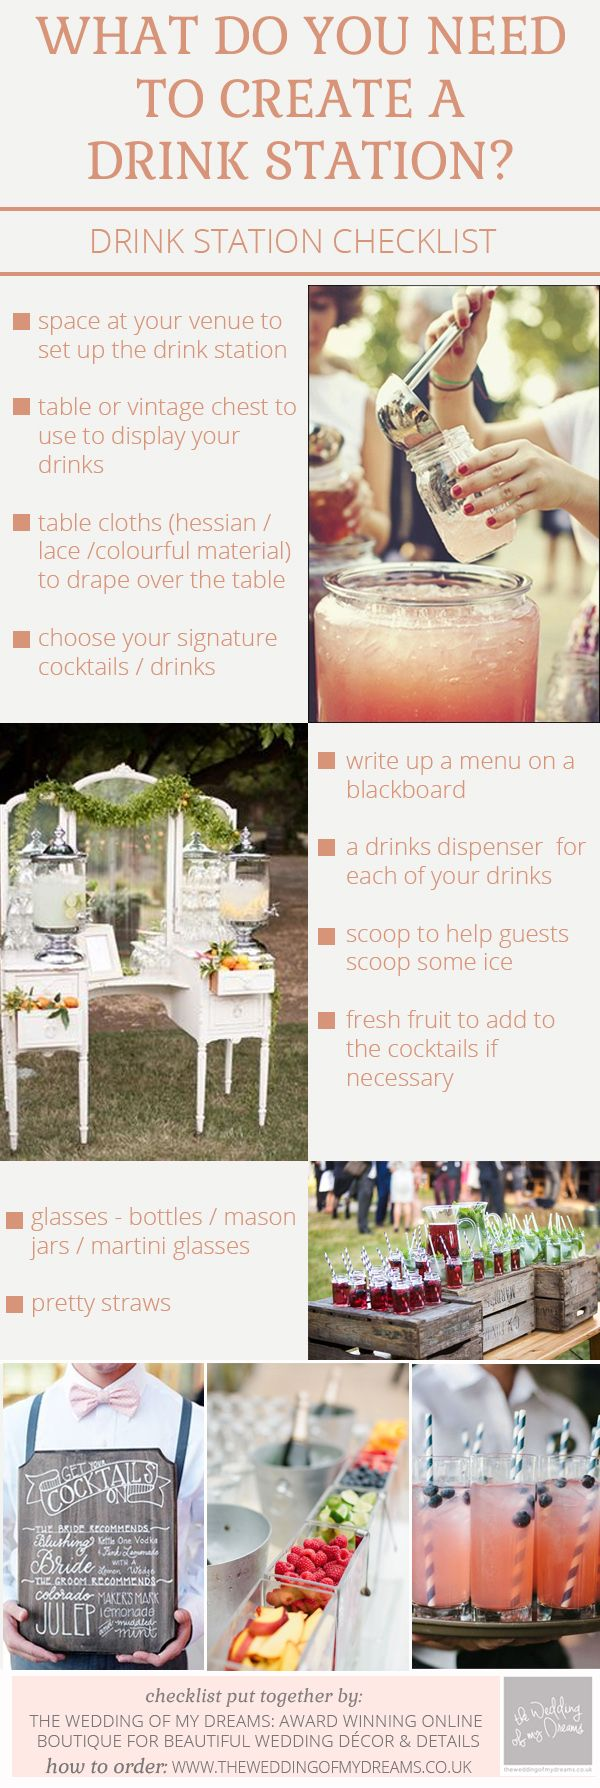 What You Need To Create Drink Stations For Weddings – Checklist / http://www.deerpearlflowers.com/rustic-beach-outdoor-wedding-checklist/